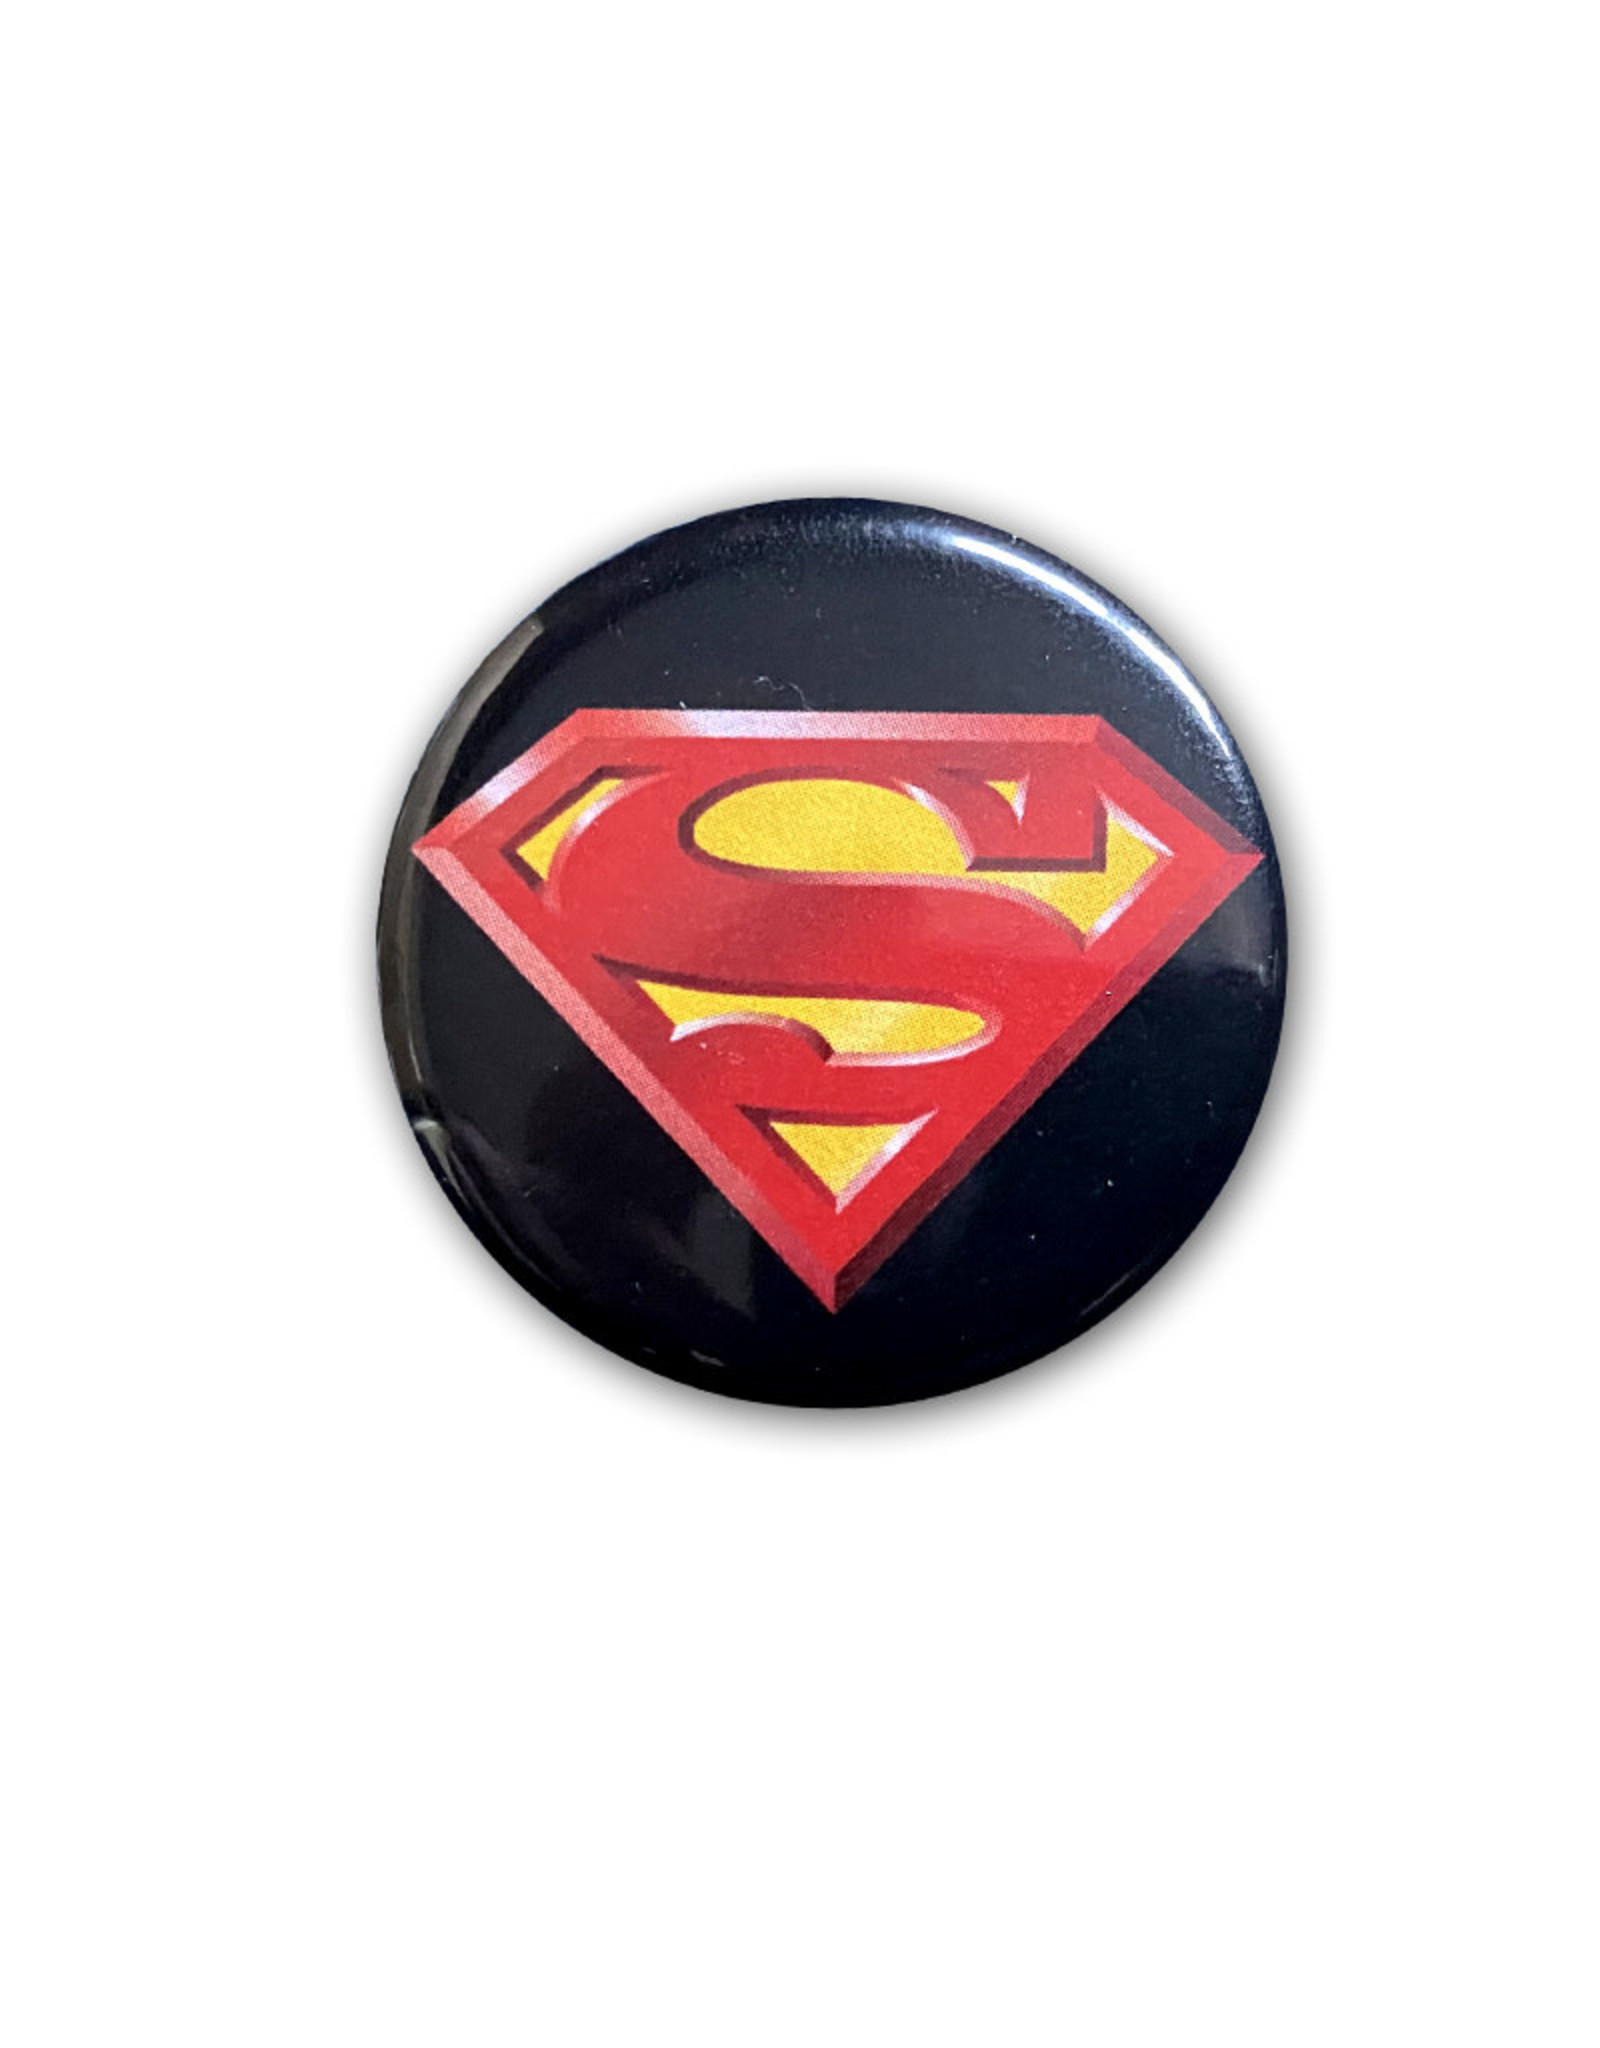 Dc comics Dc Comics ( Button ) Superman Logo on Black